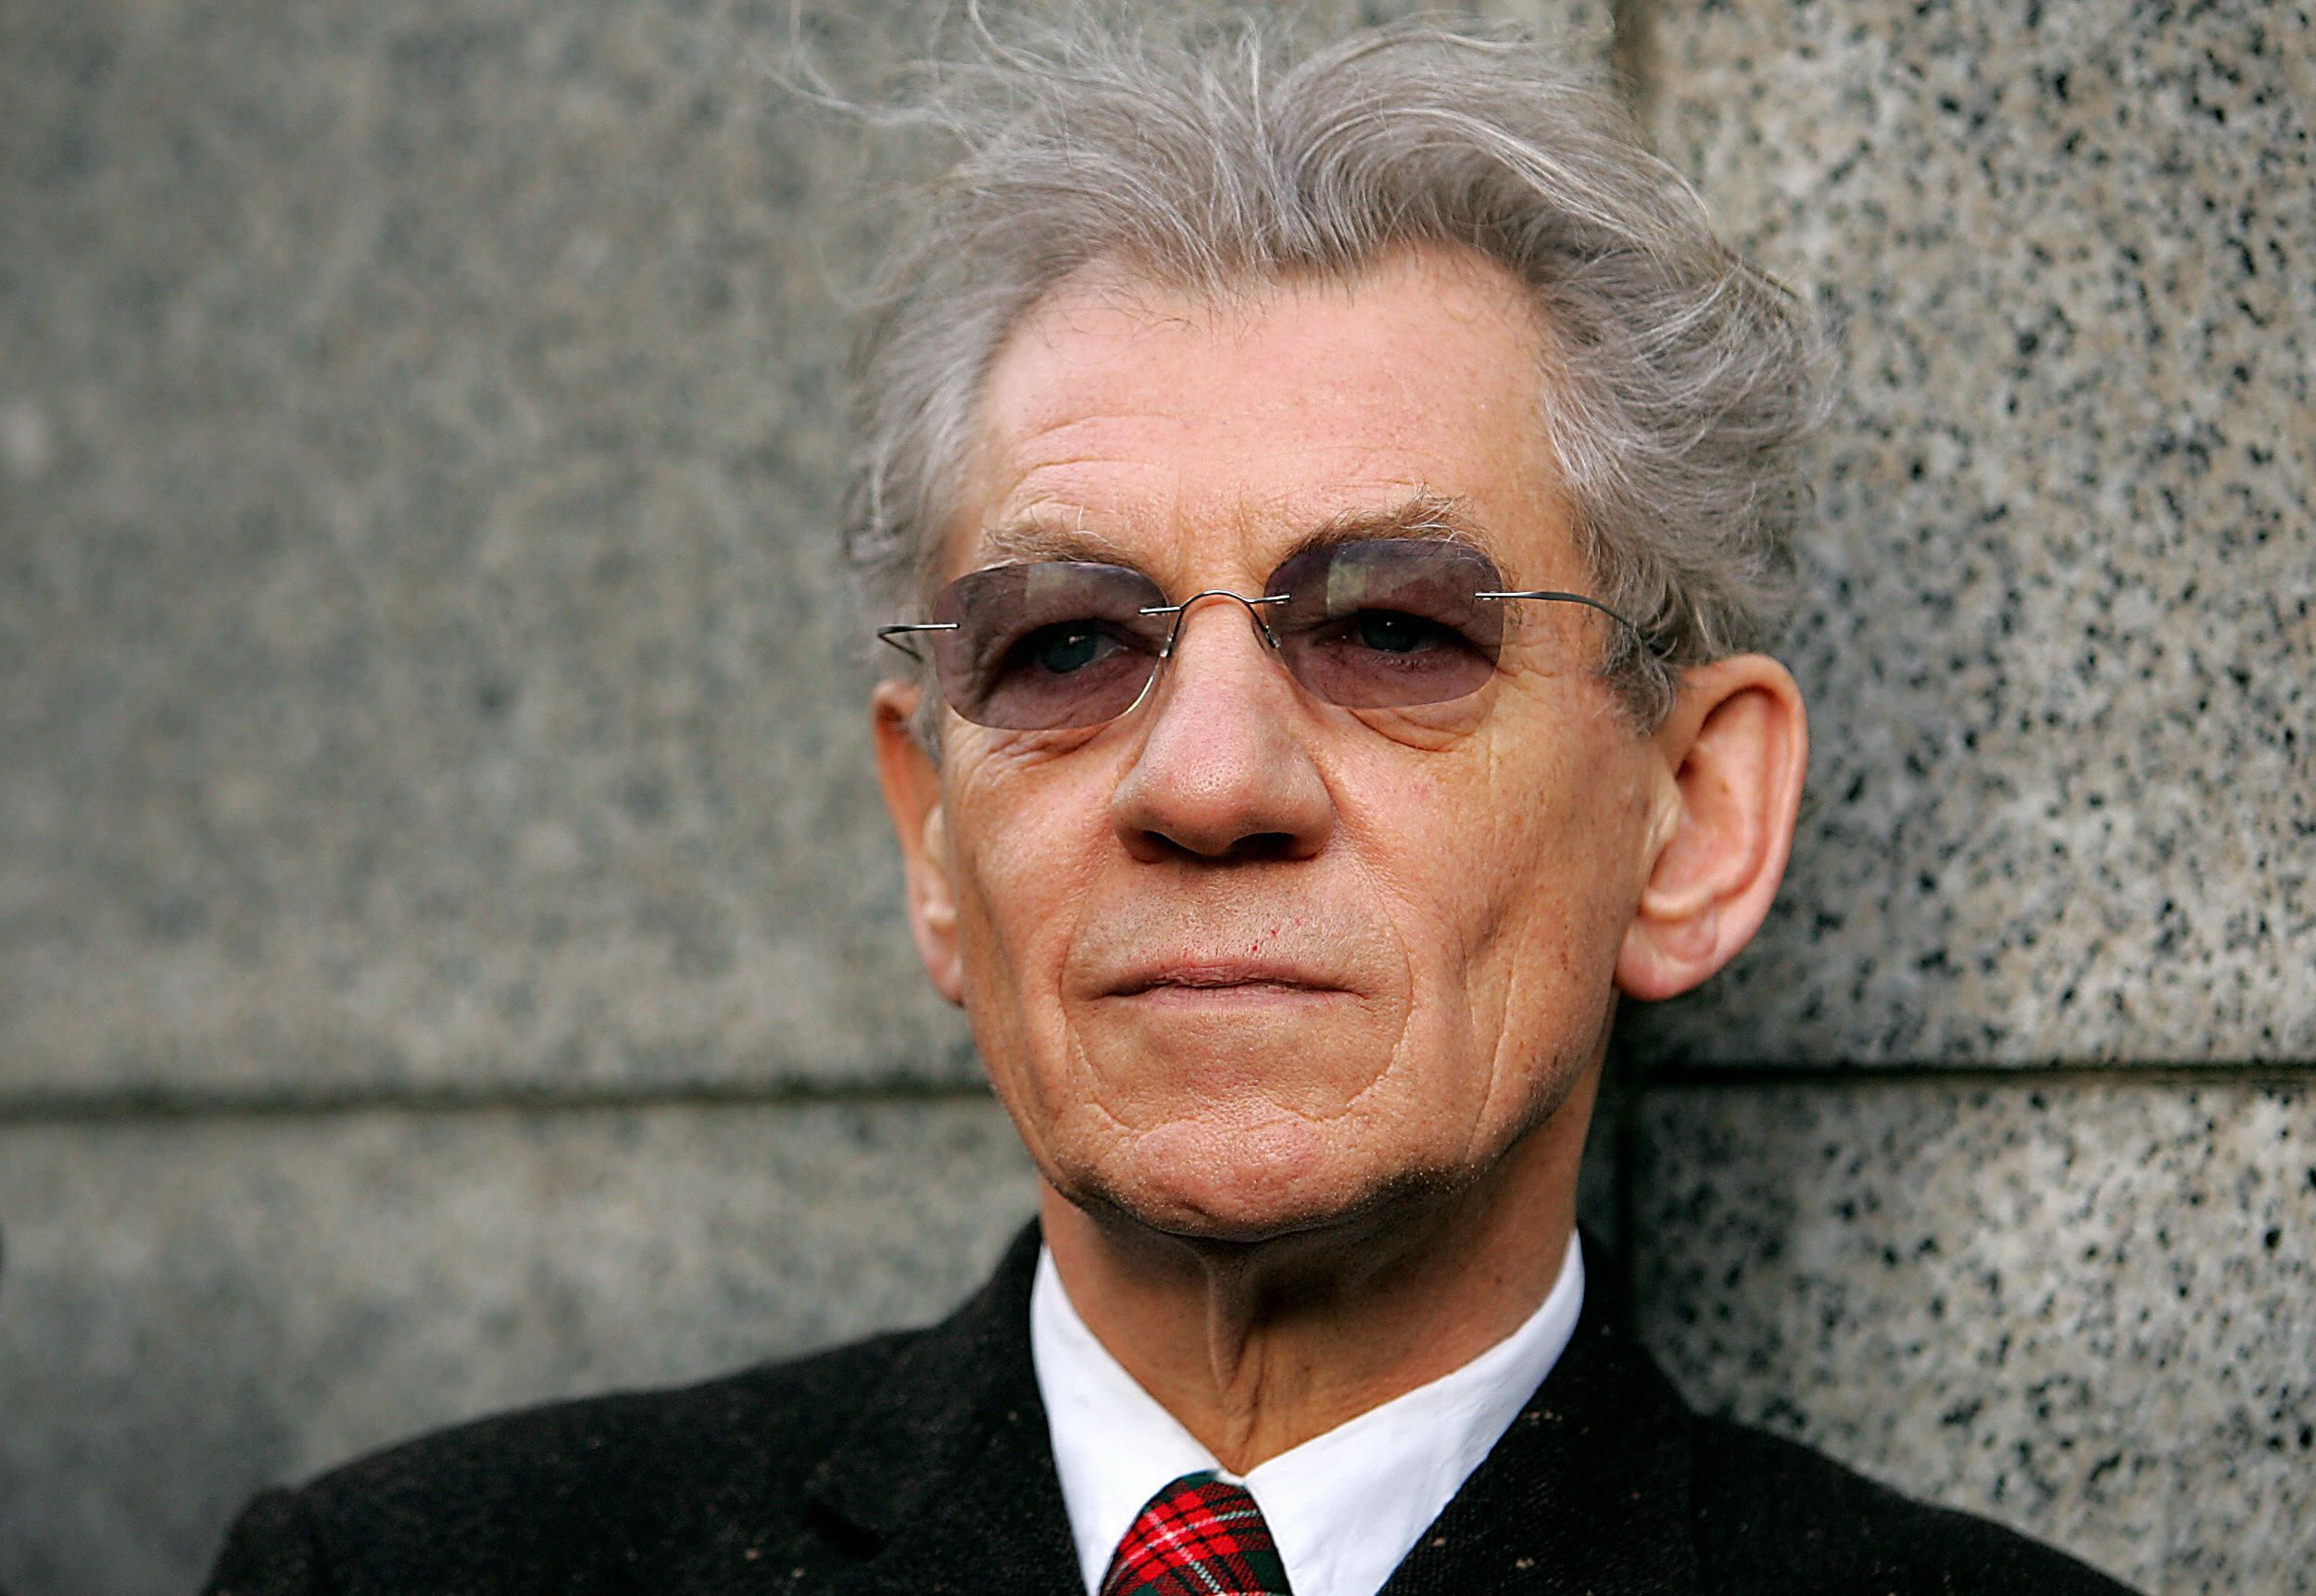 McKellen looked dapper at the unveiling of a heritage plaque for the Rose Theatre in London in 2006. (JOHN D MCHUGH/AFP/Getty Images)